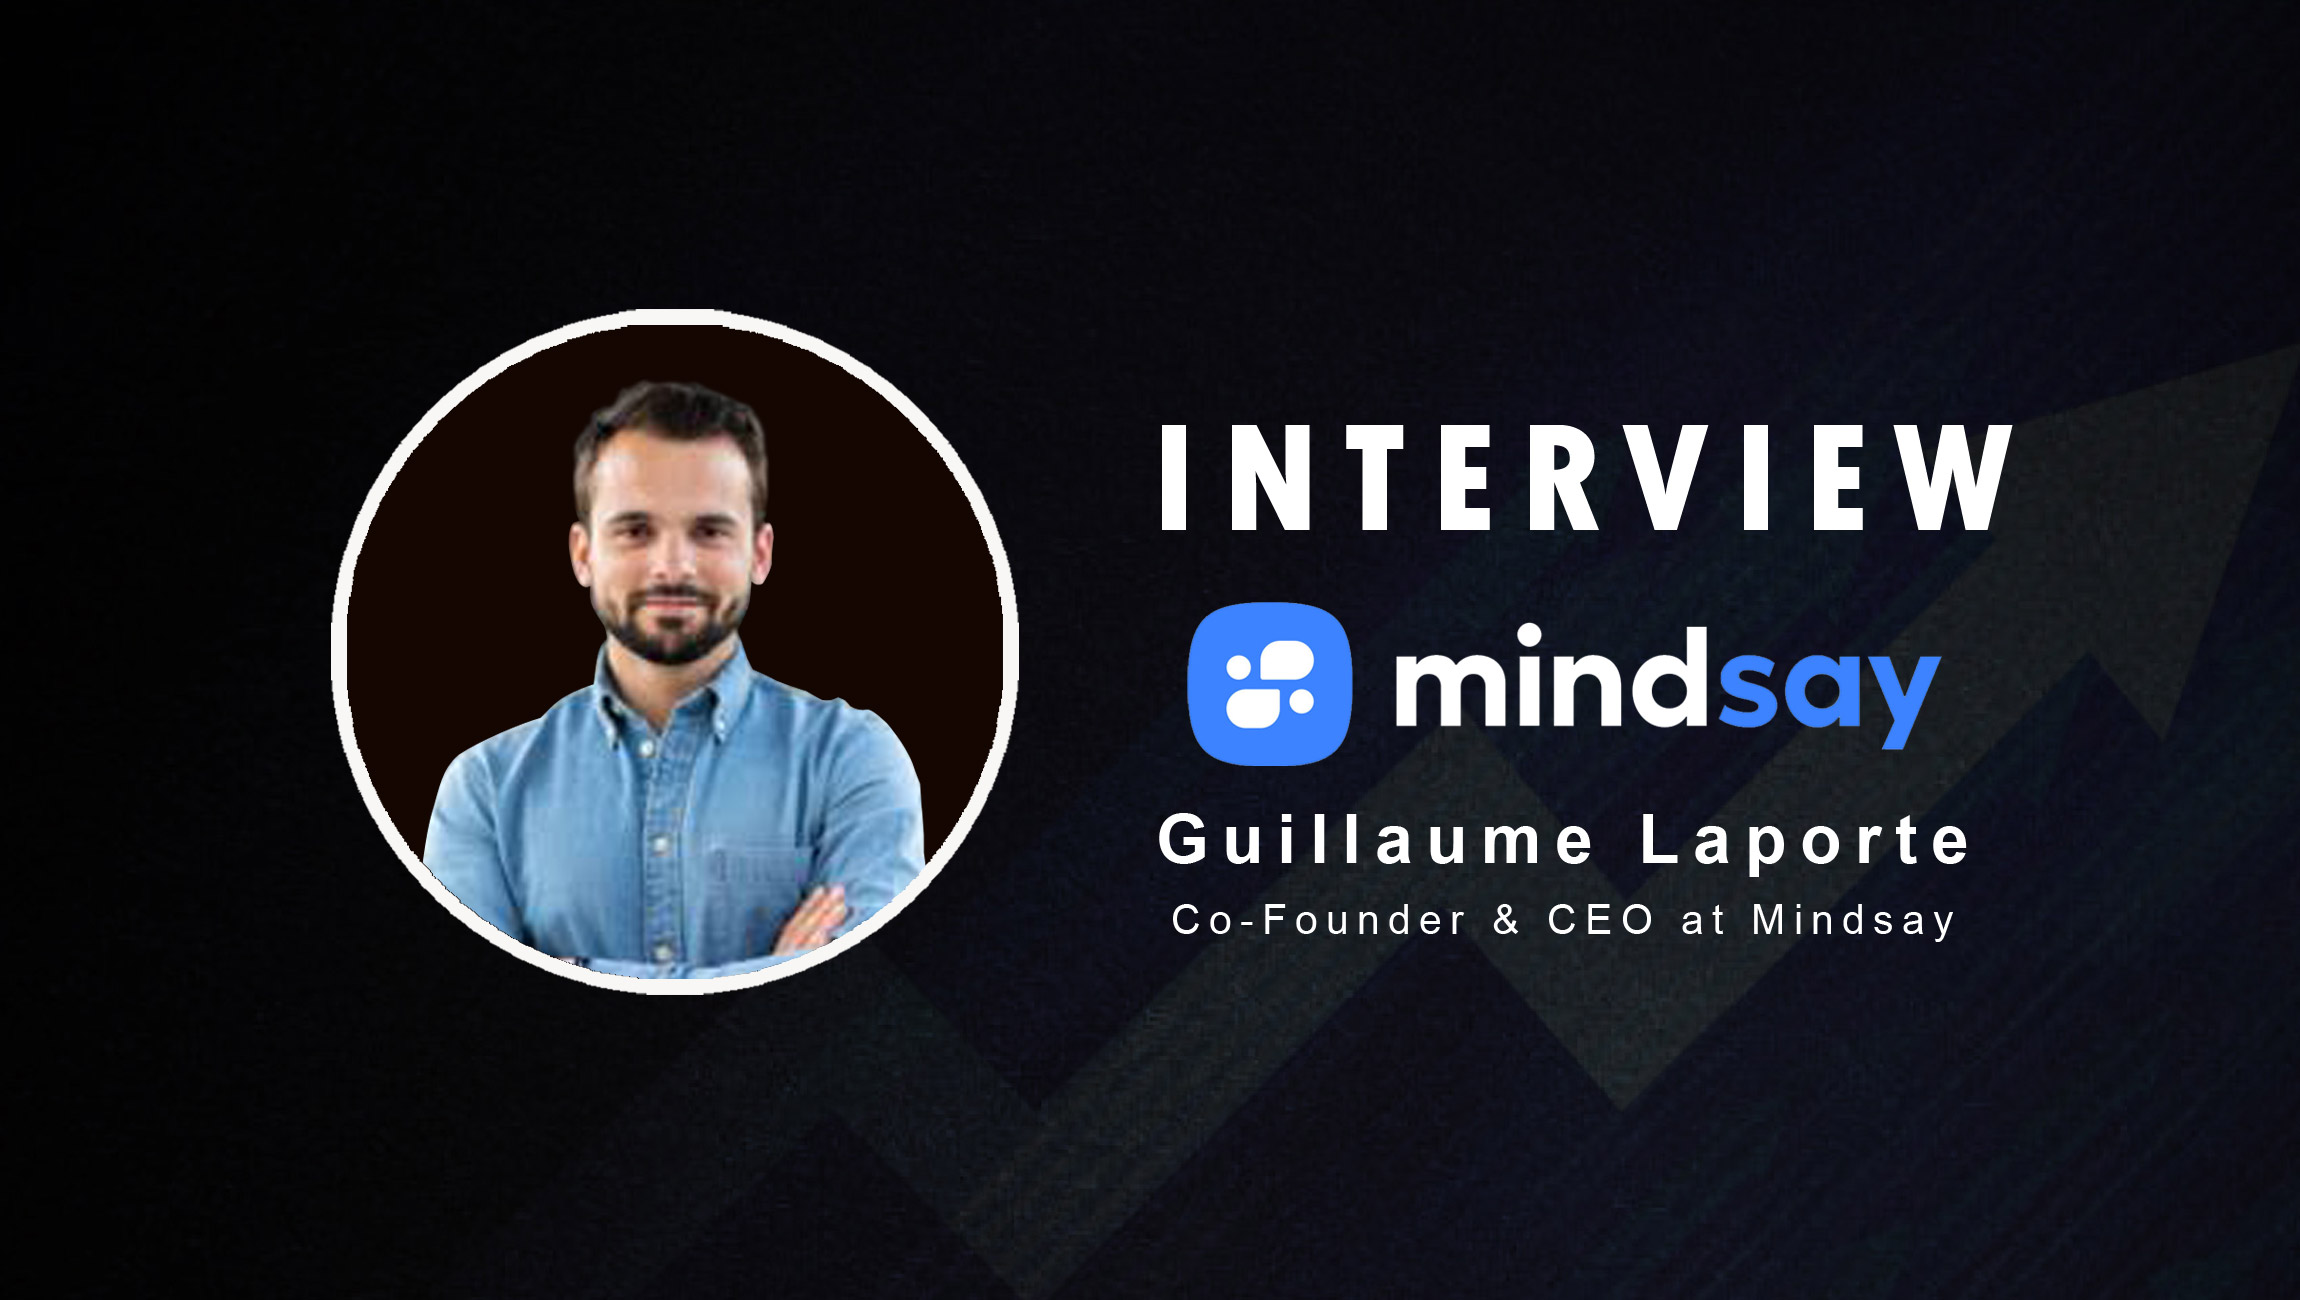 SalesTechStar Interview with Guillaume Laporte, Co-Founder & CEO at Mindsay